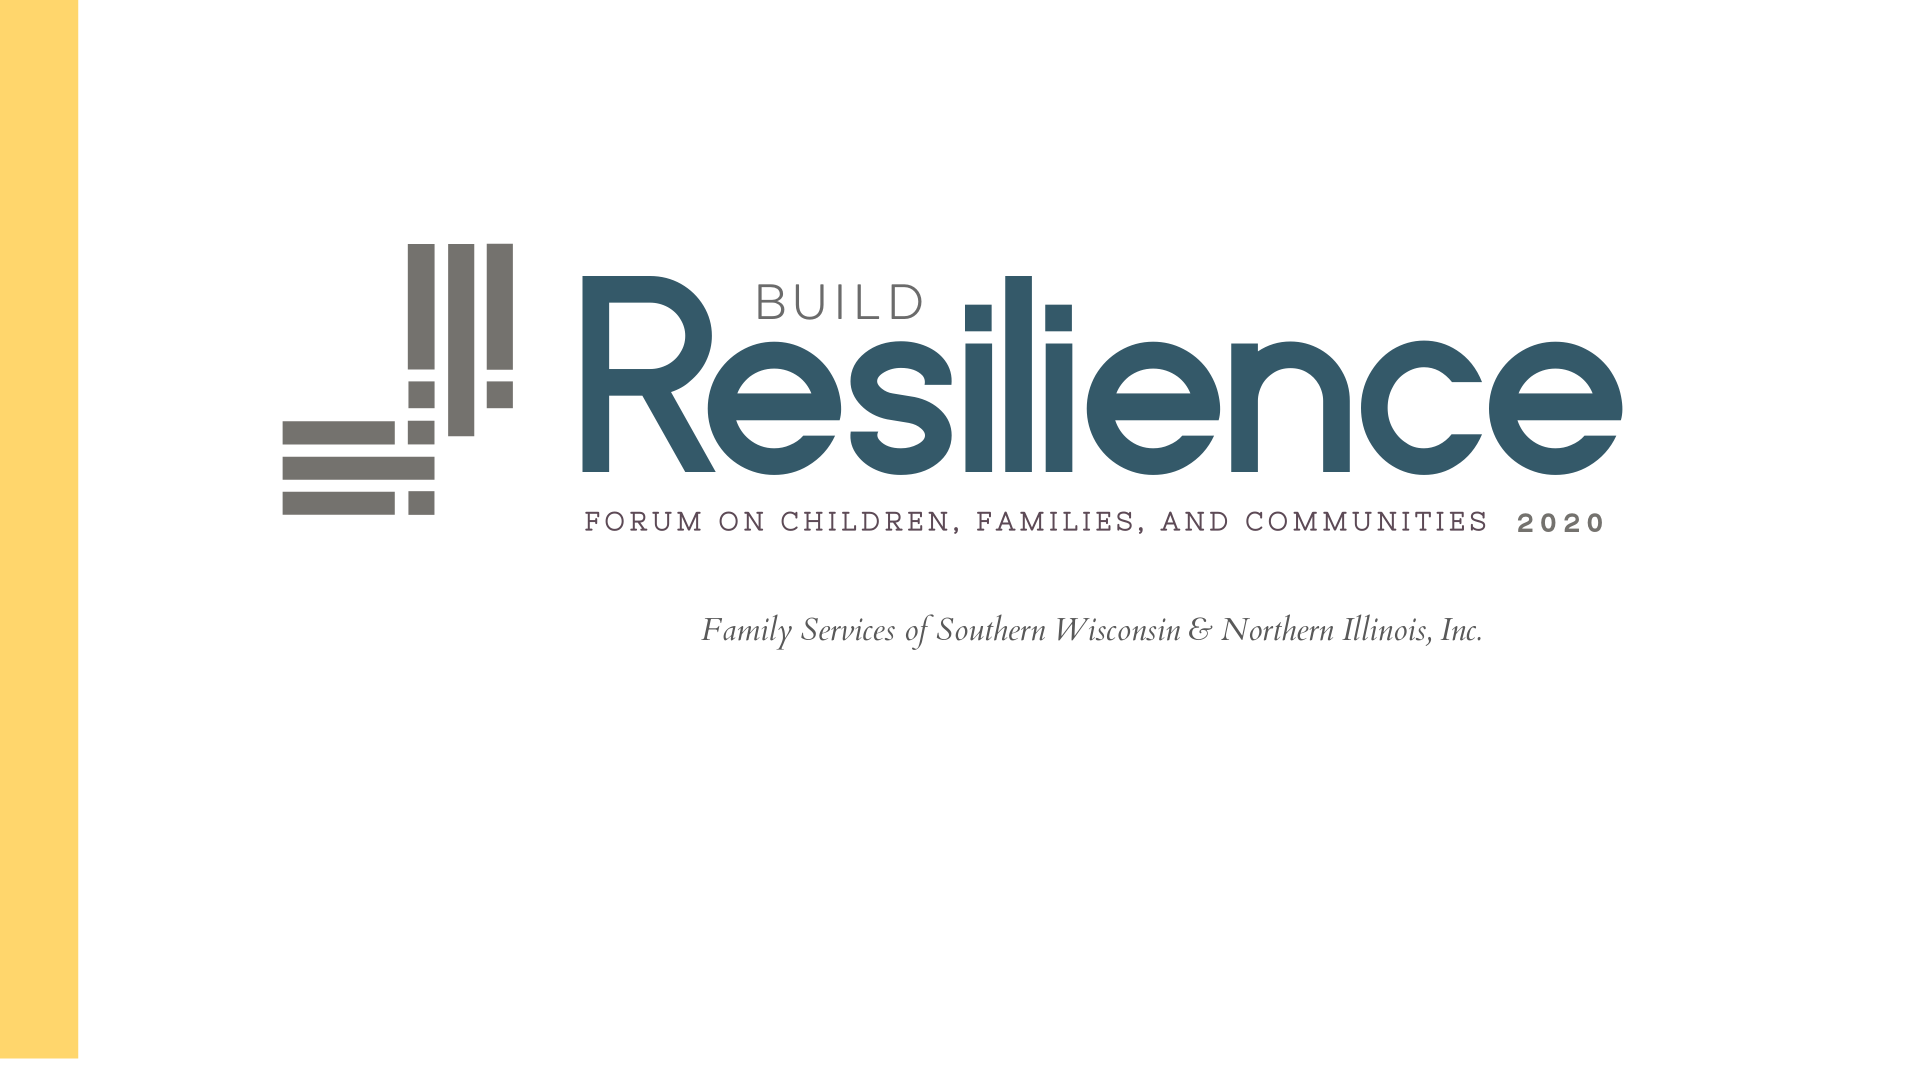 Logo made by Owl Street Studio  for Family Services of Beloit Wisconsin fundraiser event Build Resilience